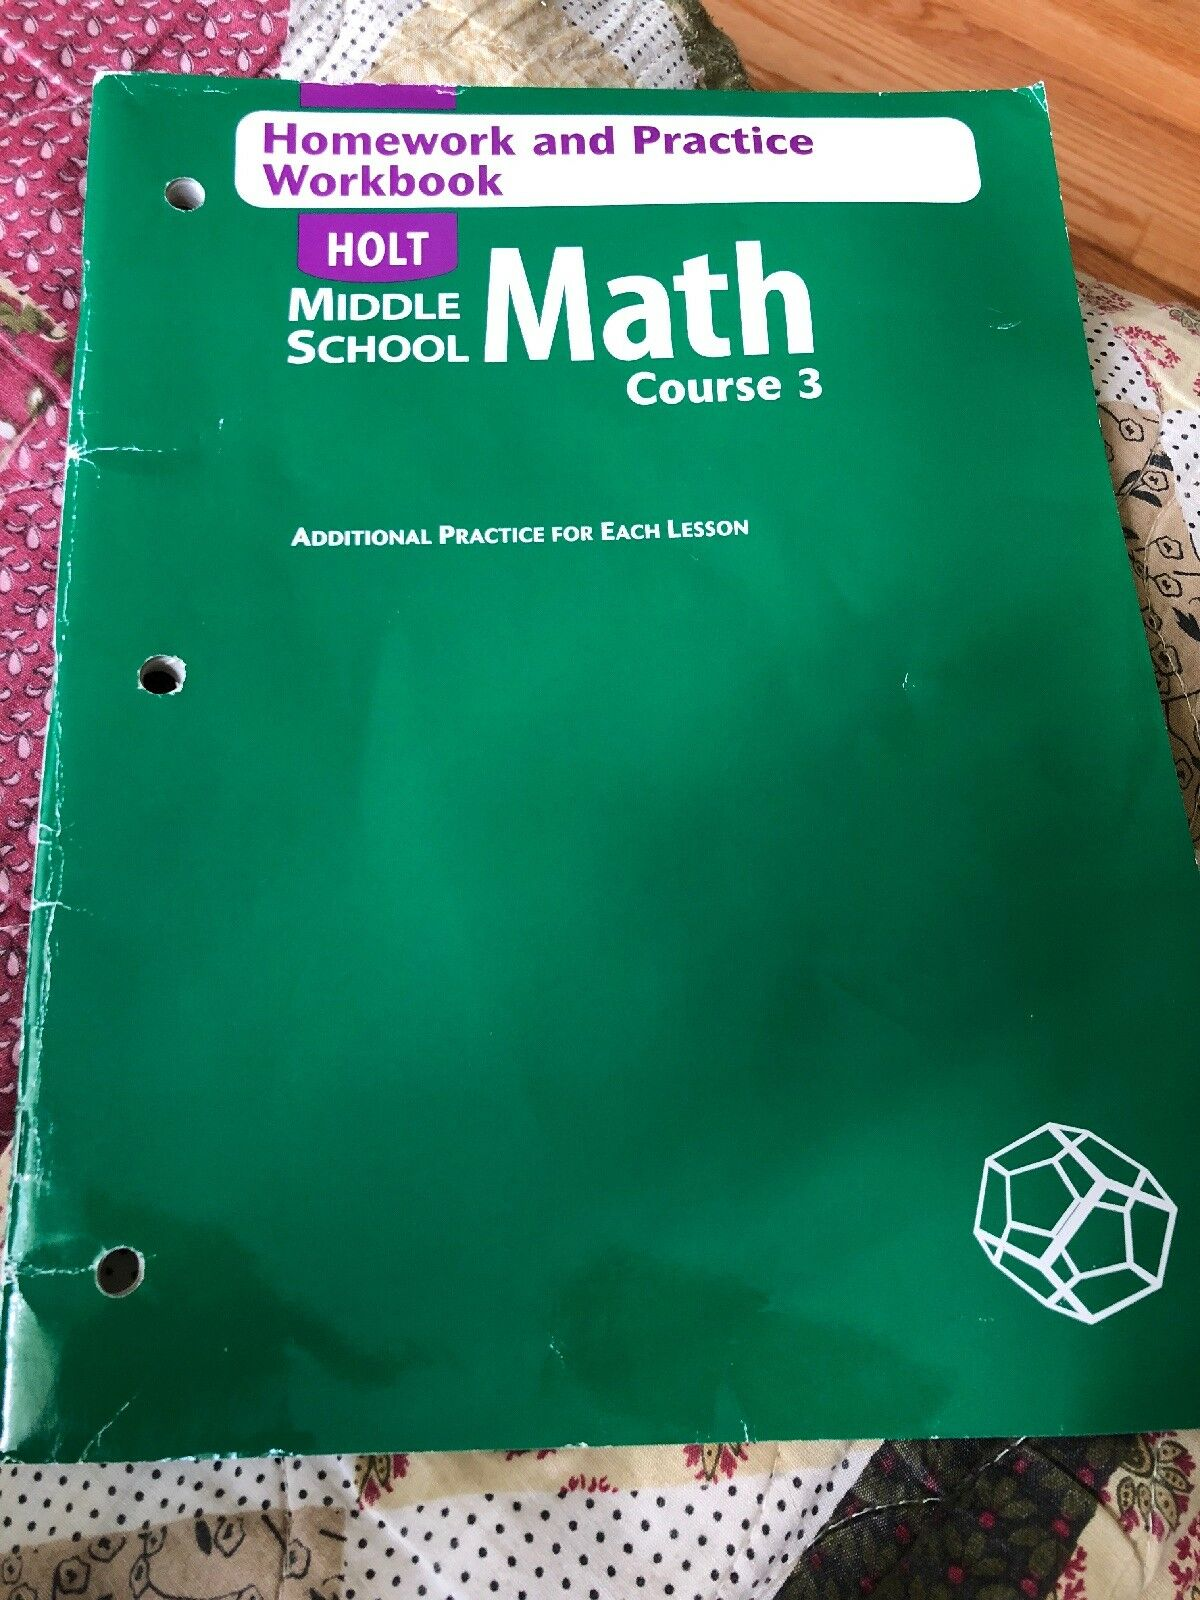 Holt Middle School Math: Holt Mathematics Course 3 : Homework and Practice  Workbook by Rinehart and Winston Staff Holt (2004, Paperback) | eBay